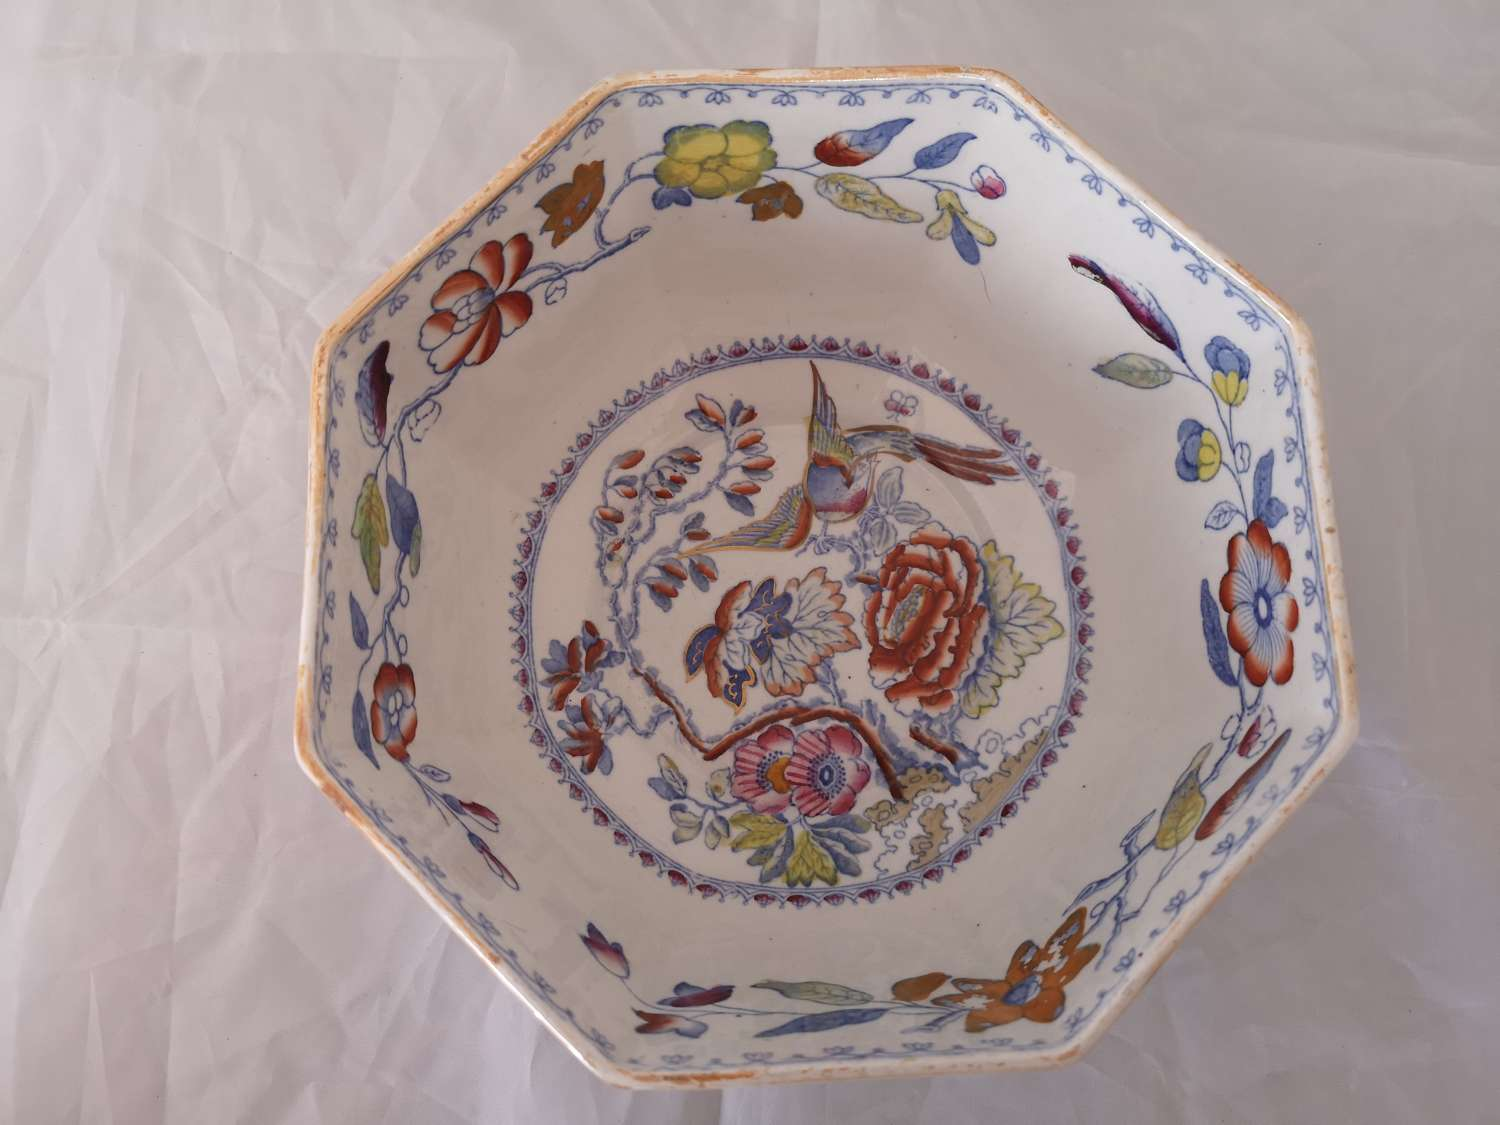 Mason's antique octagonal bowl